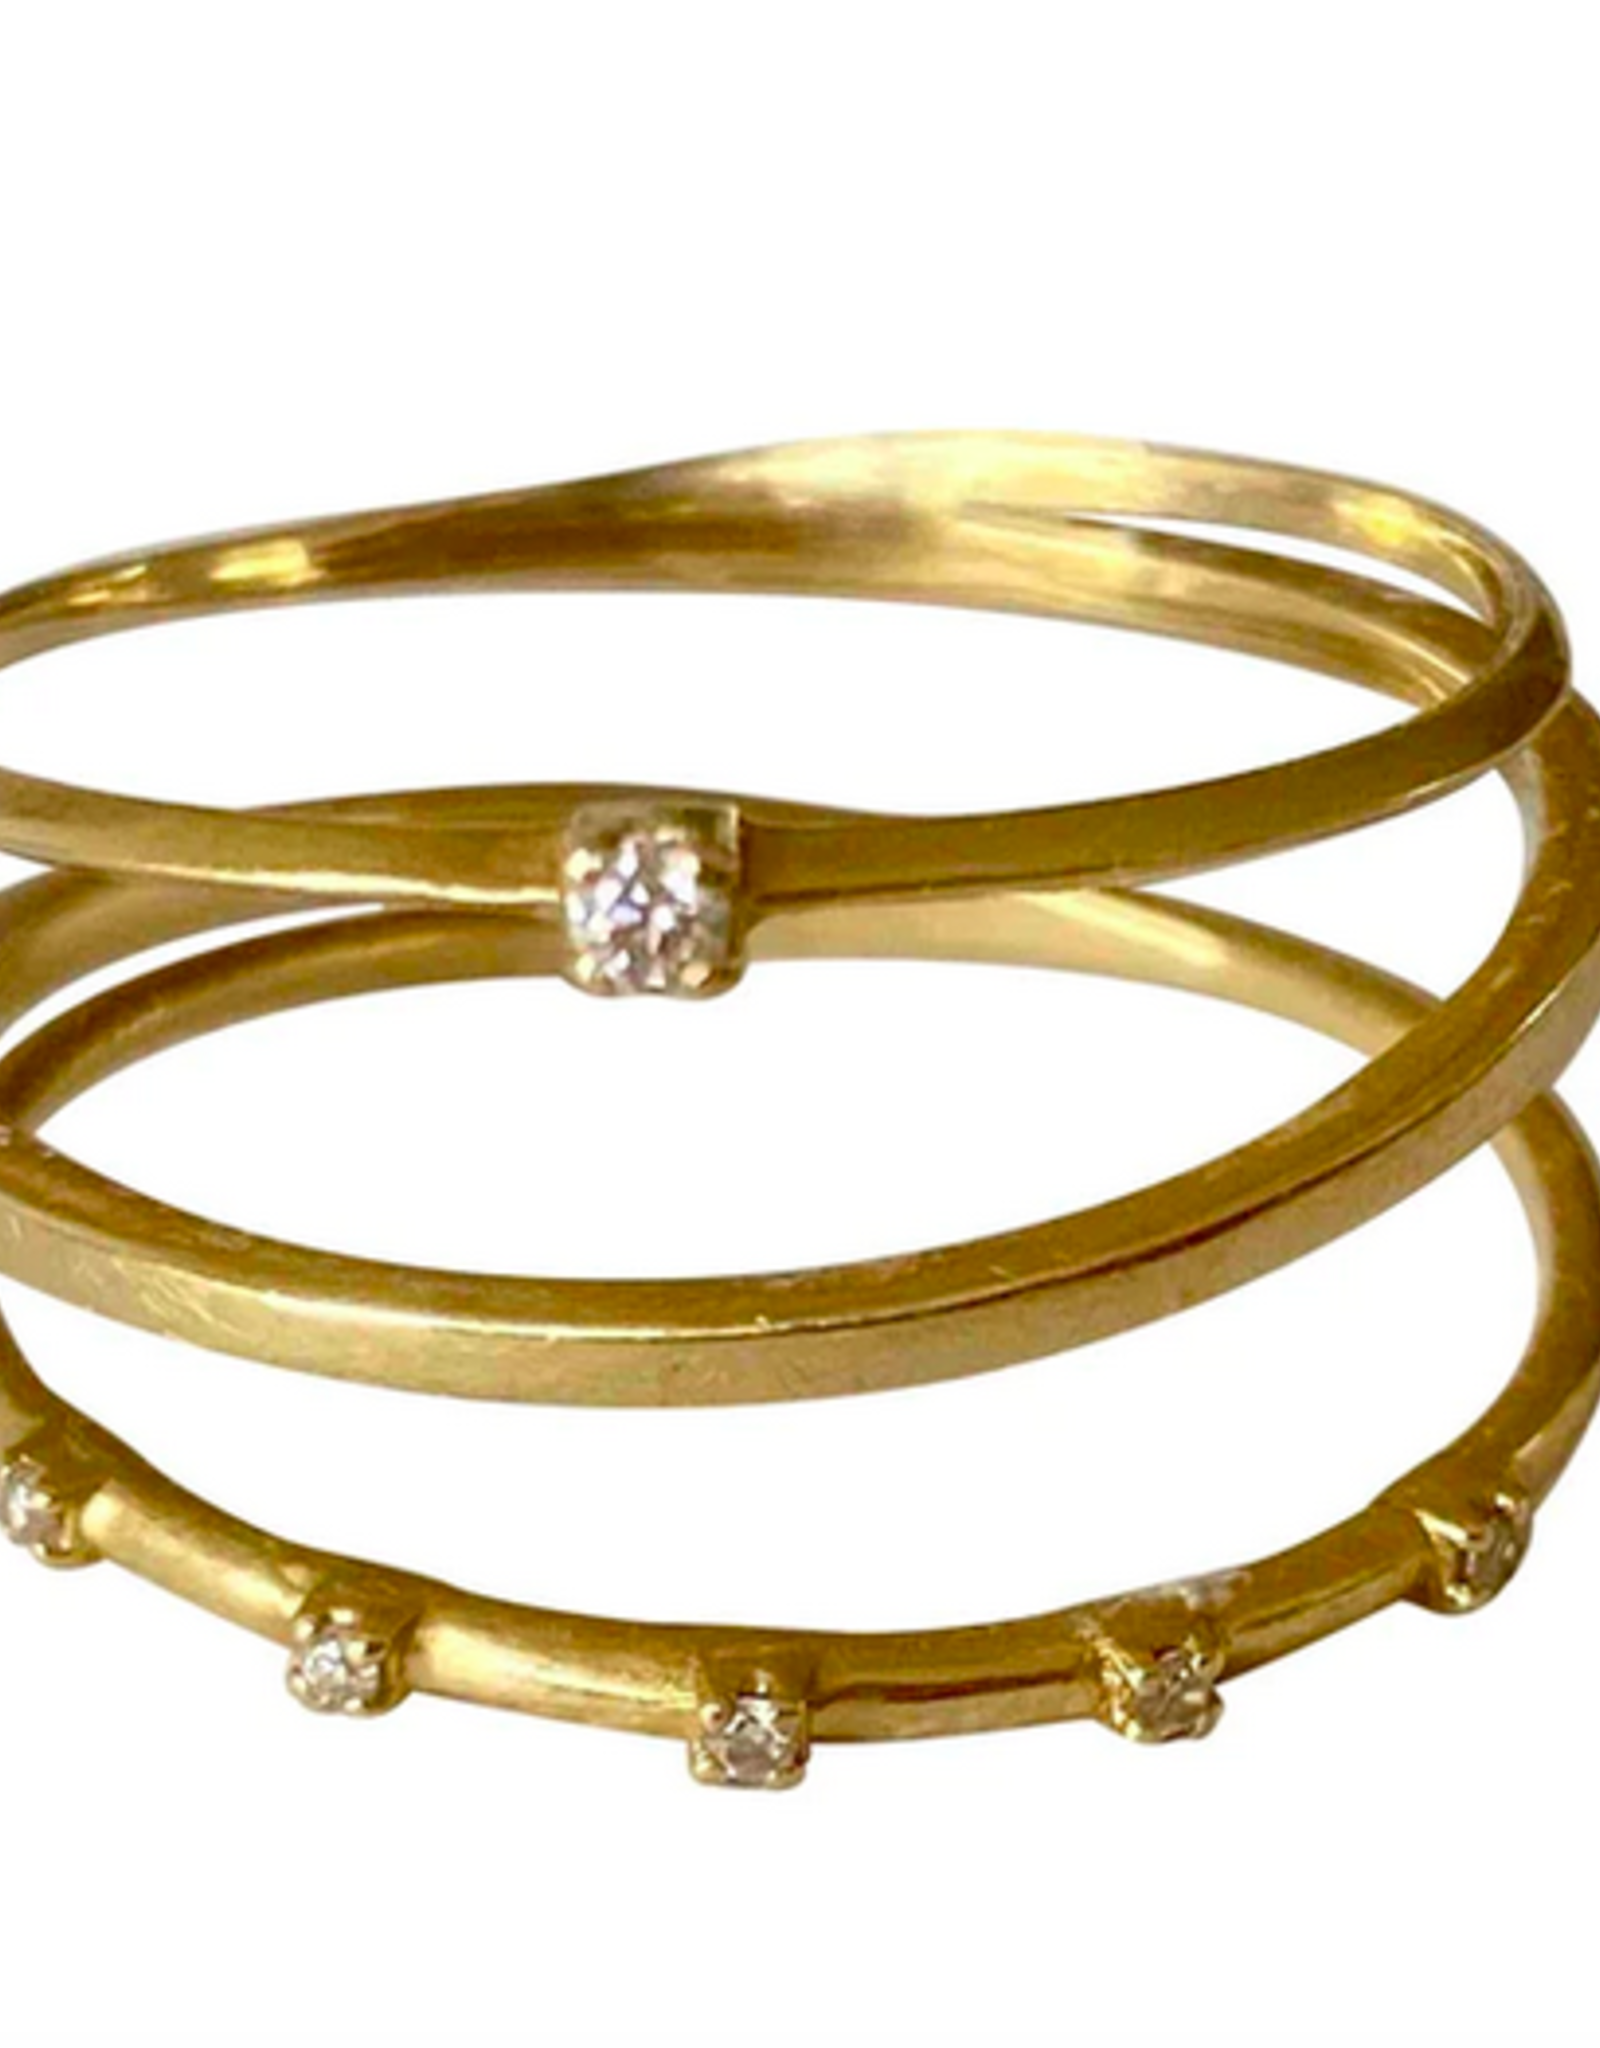 Sansoeurs Sansoeurs Ring Triple Spring Diamond Yellow Gold